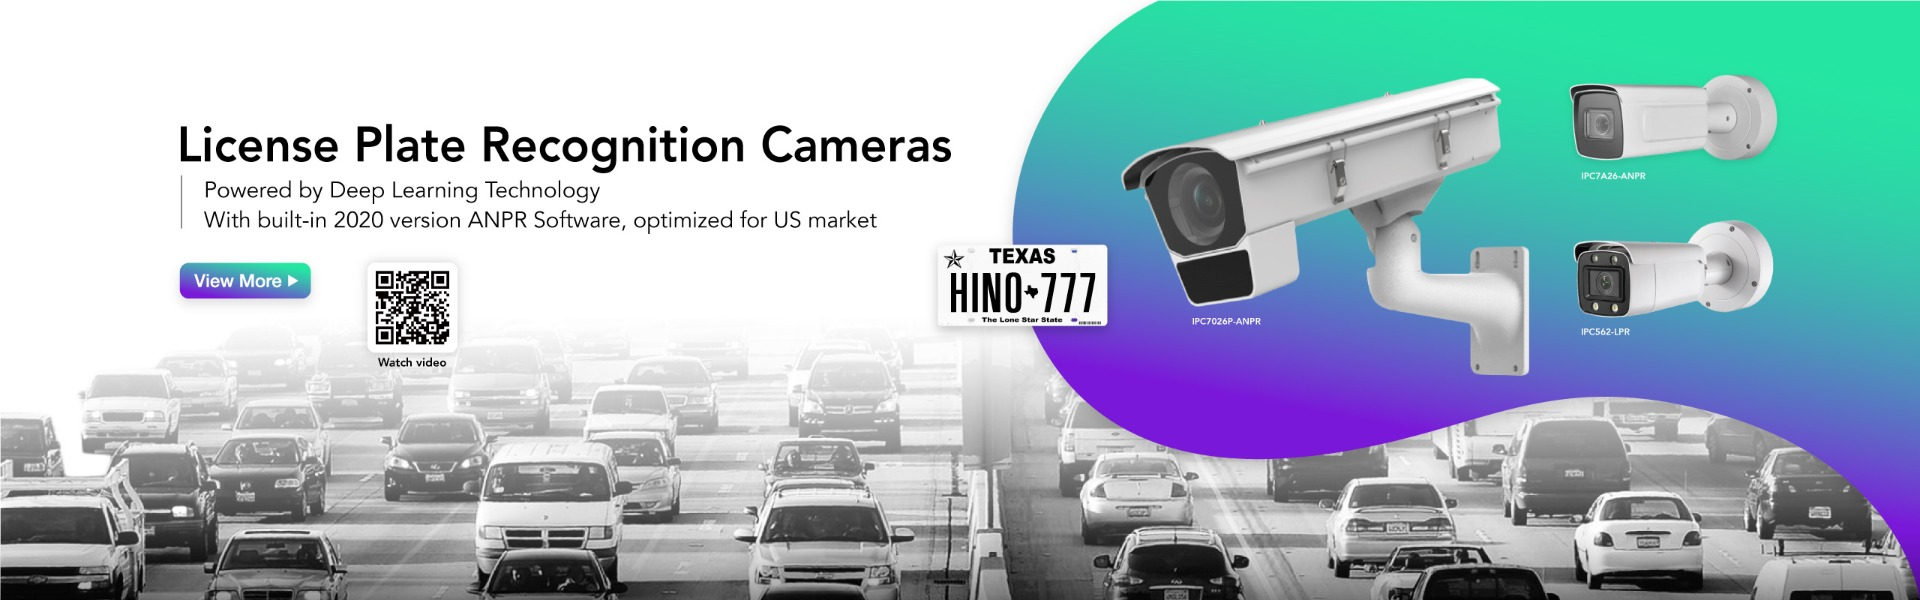 HINO ANPR Camera with built-in License Plate Recognition